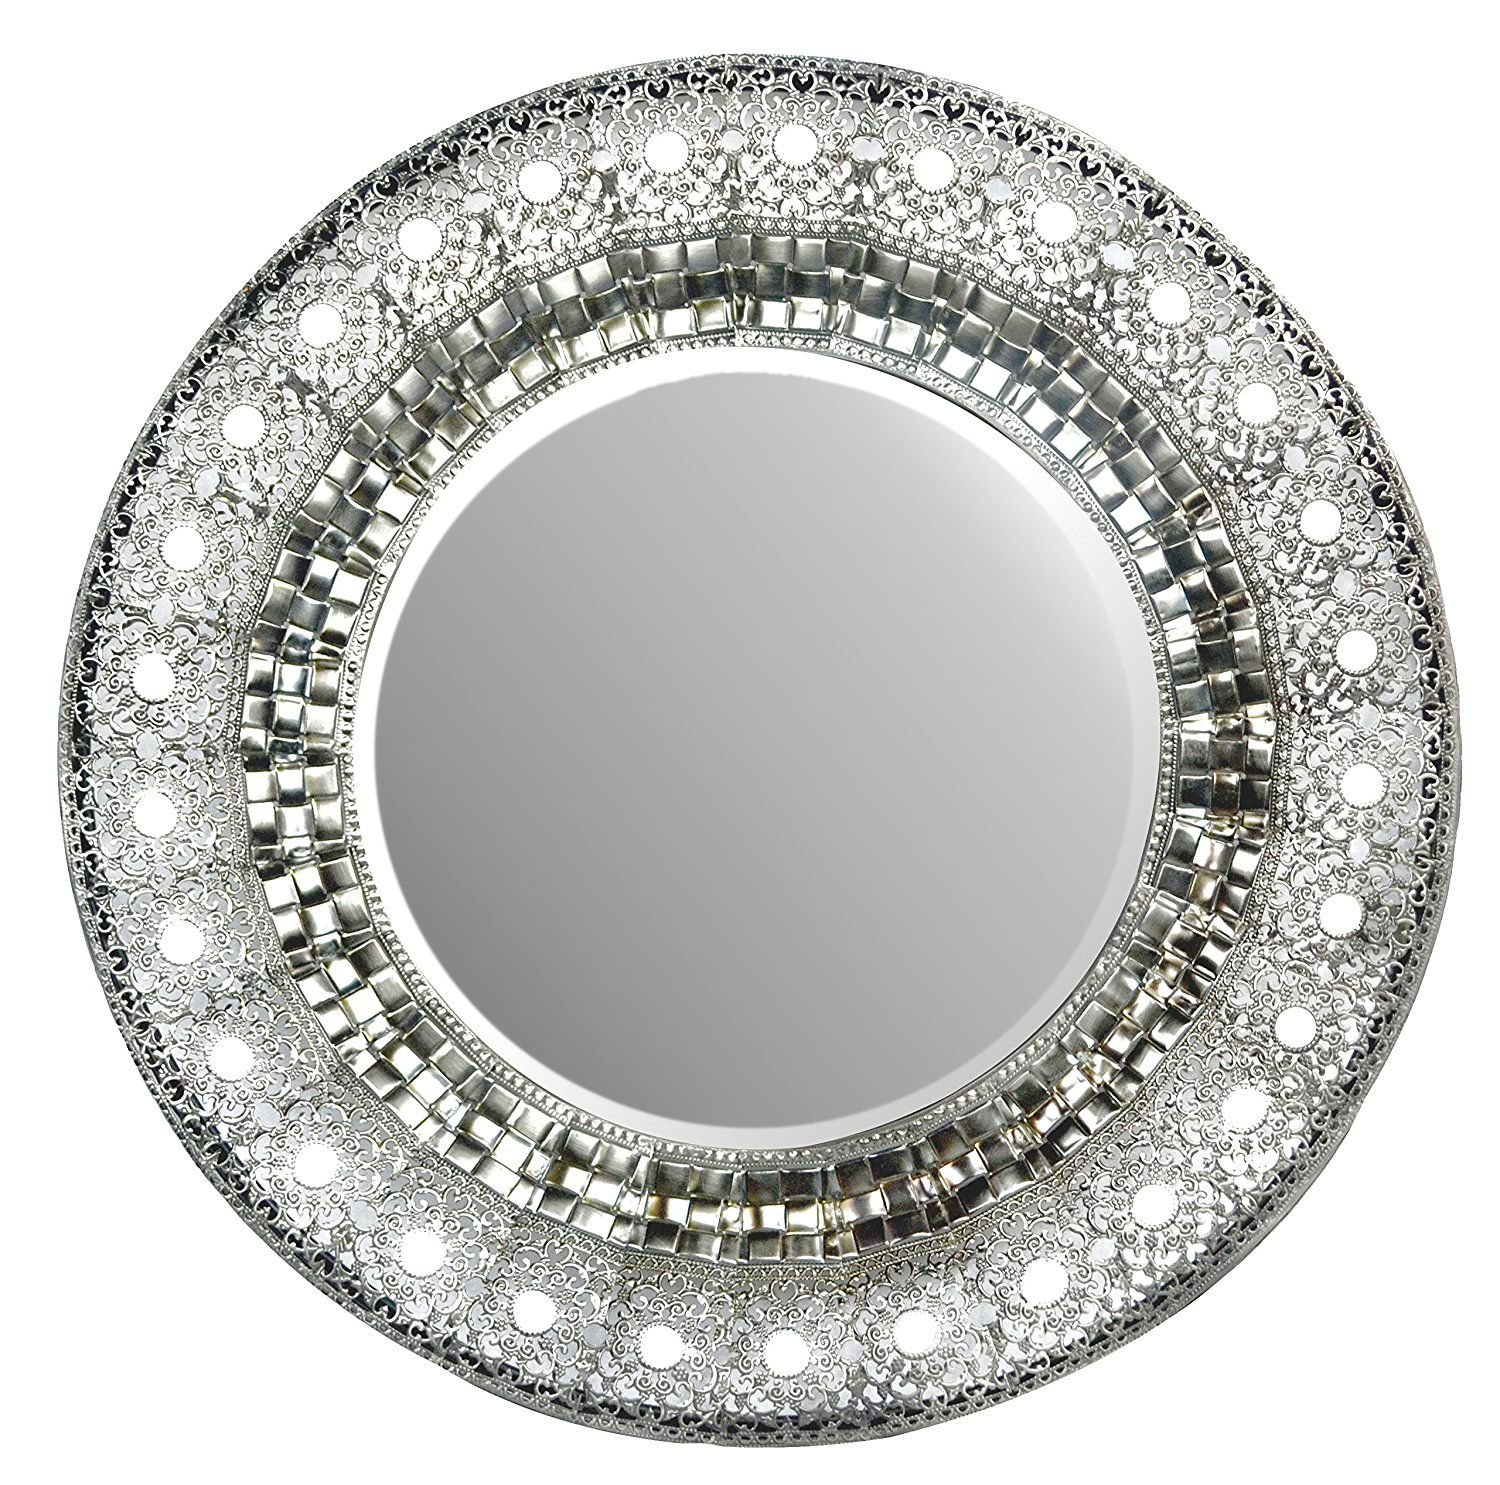 LuLu Decor, 19'' Oriental Round Silver Metal Beveled Wall Mirror, Decorative Mirror for Home & Office